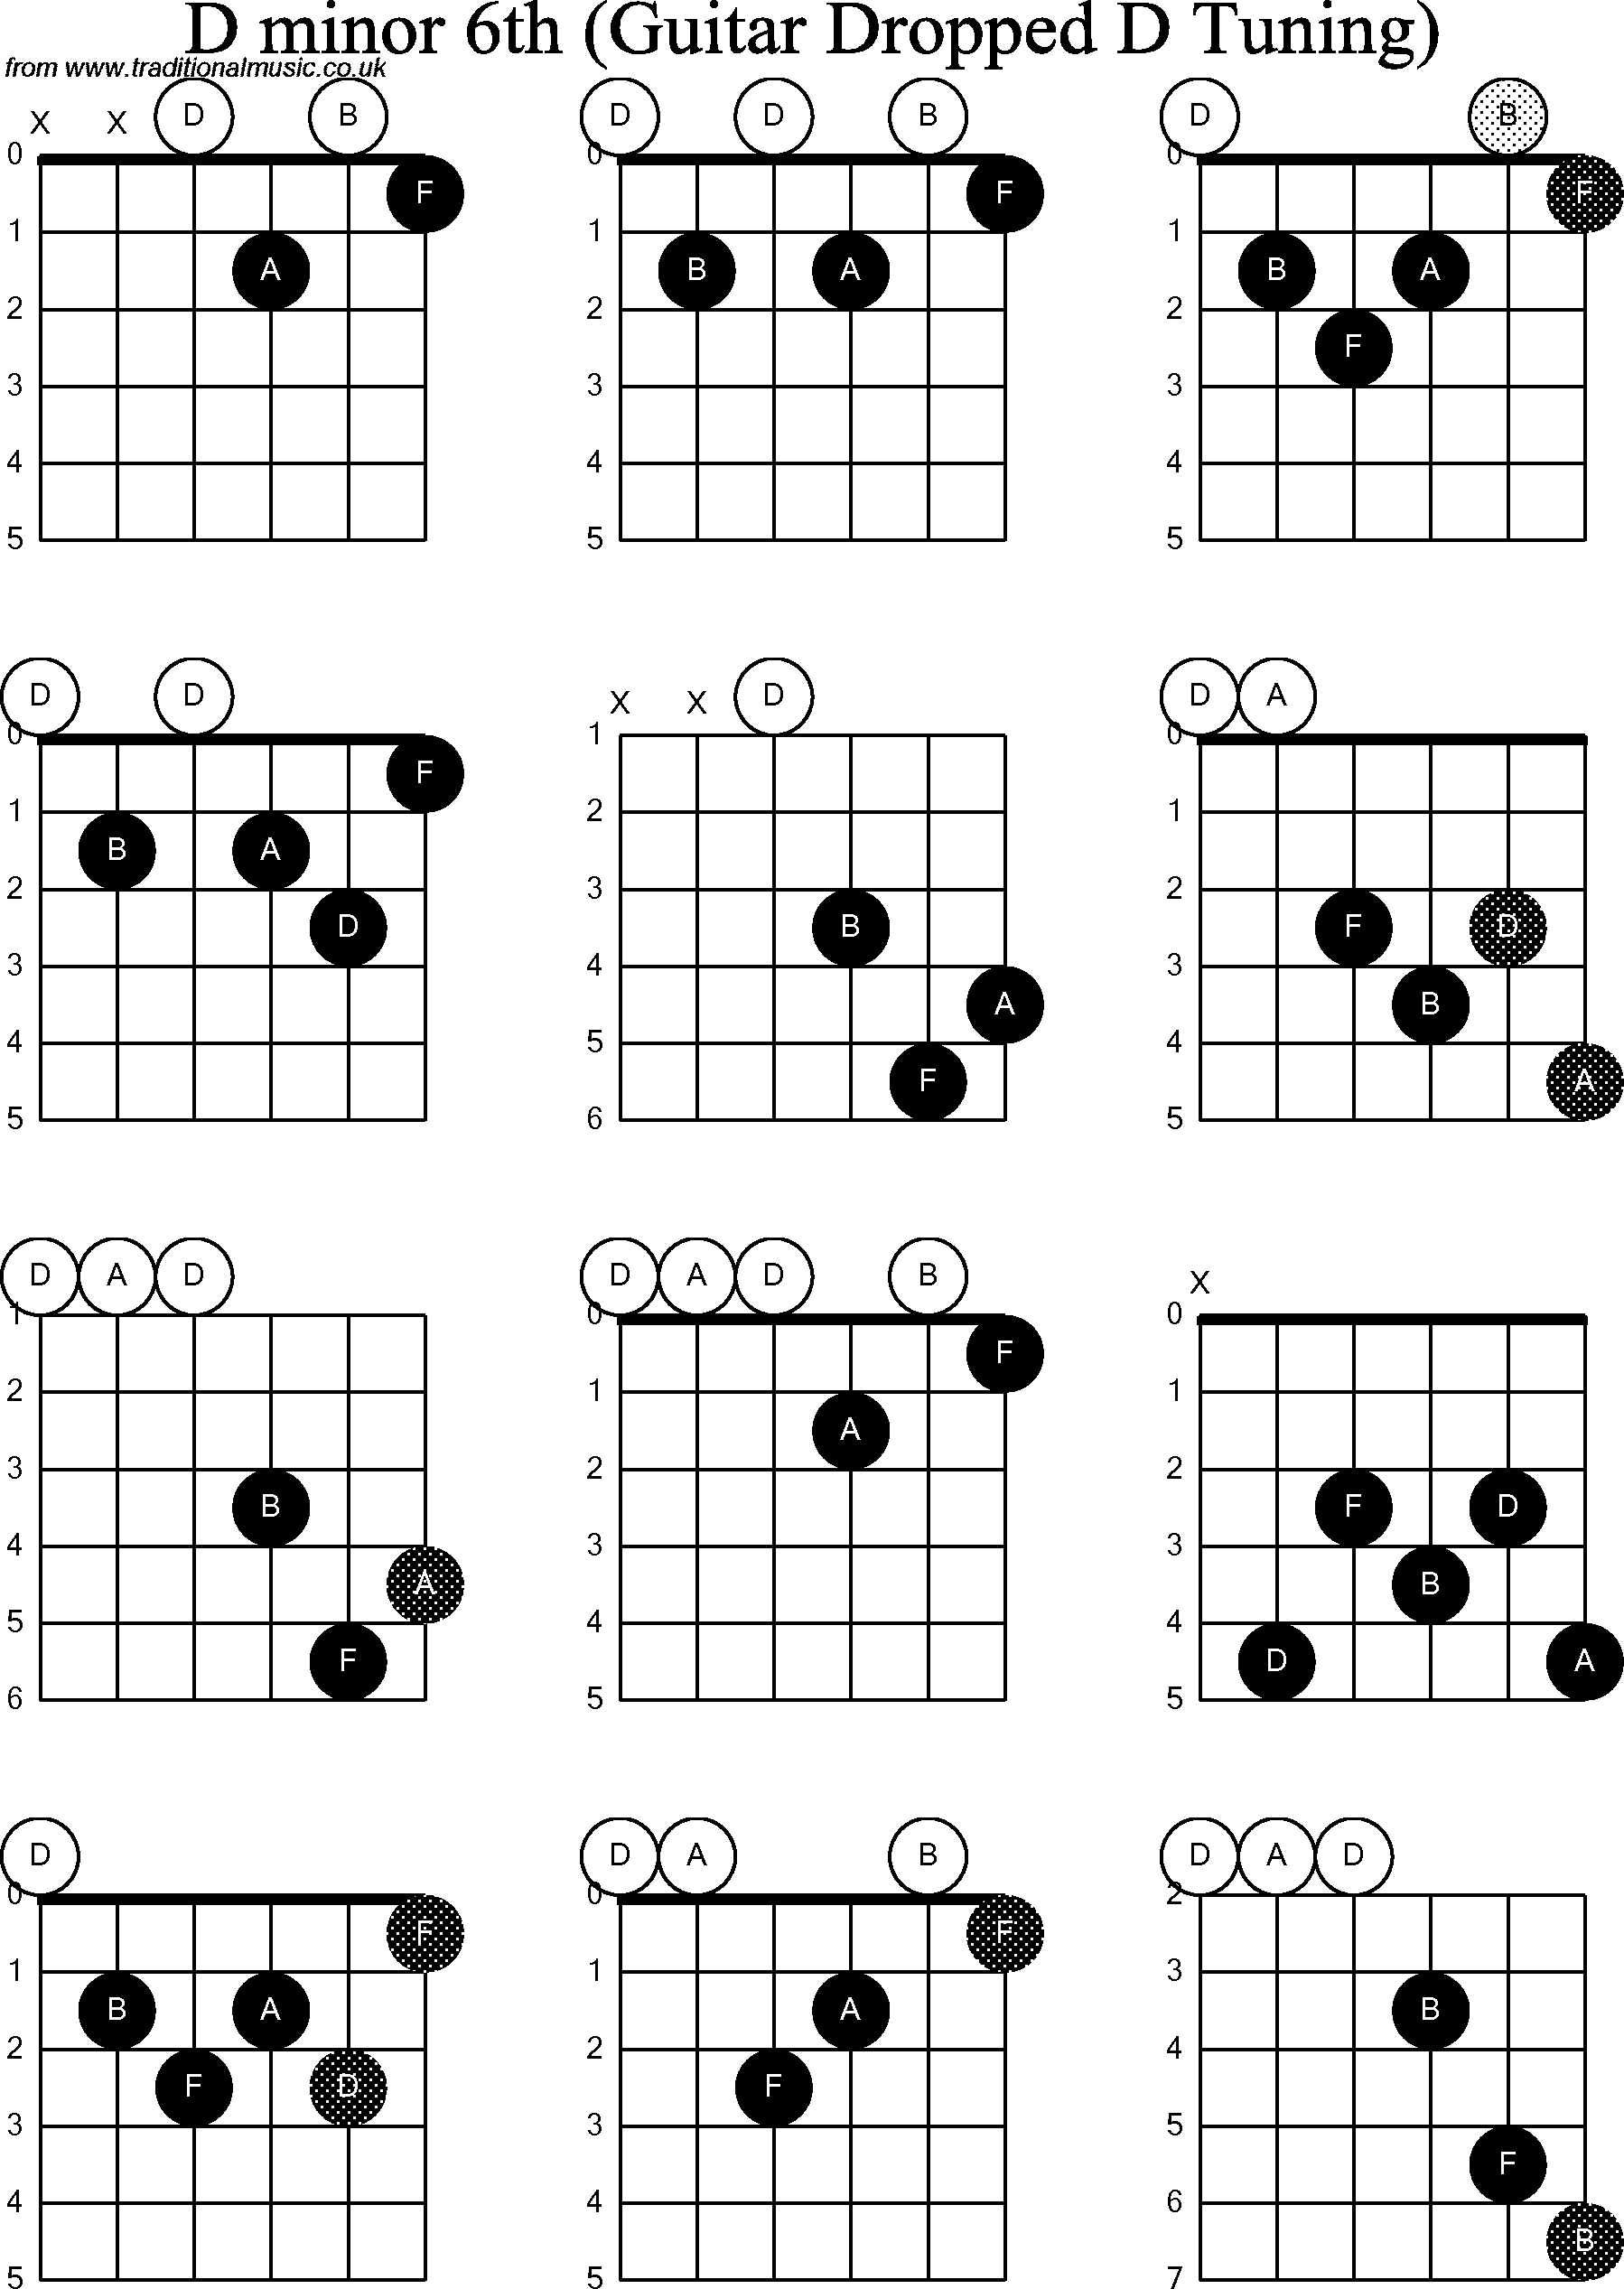 Chord Diagrams For Dropped D Guitardadgbe D Minor6th